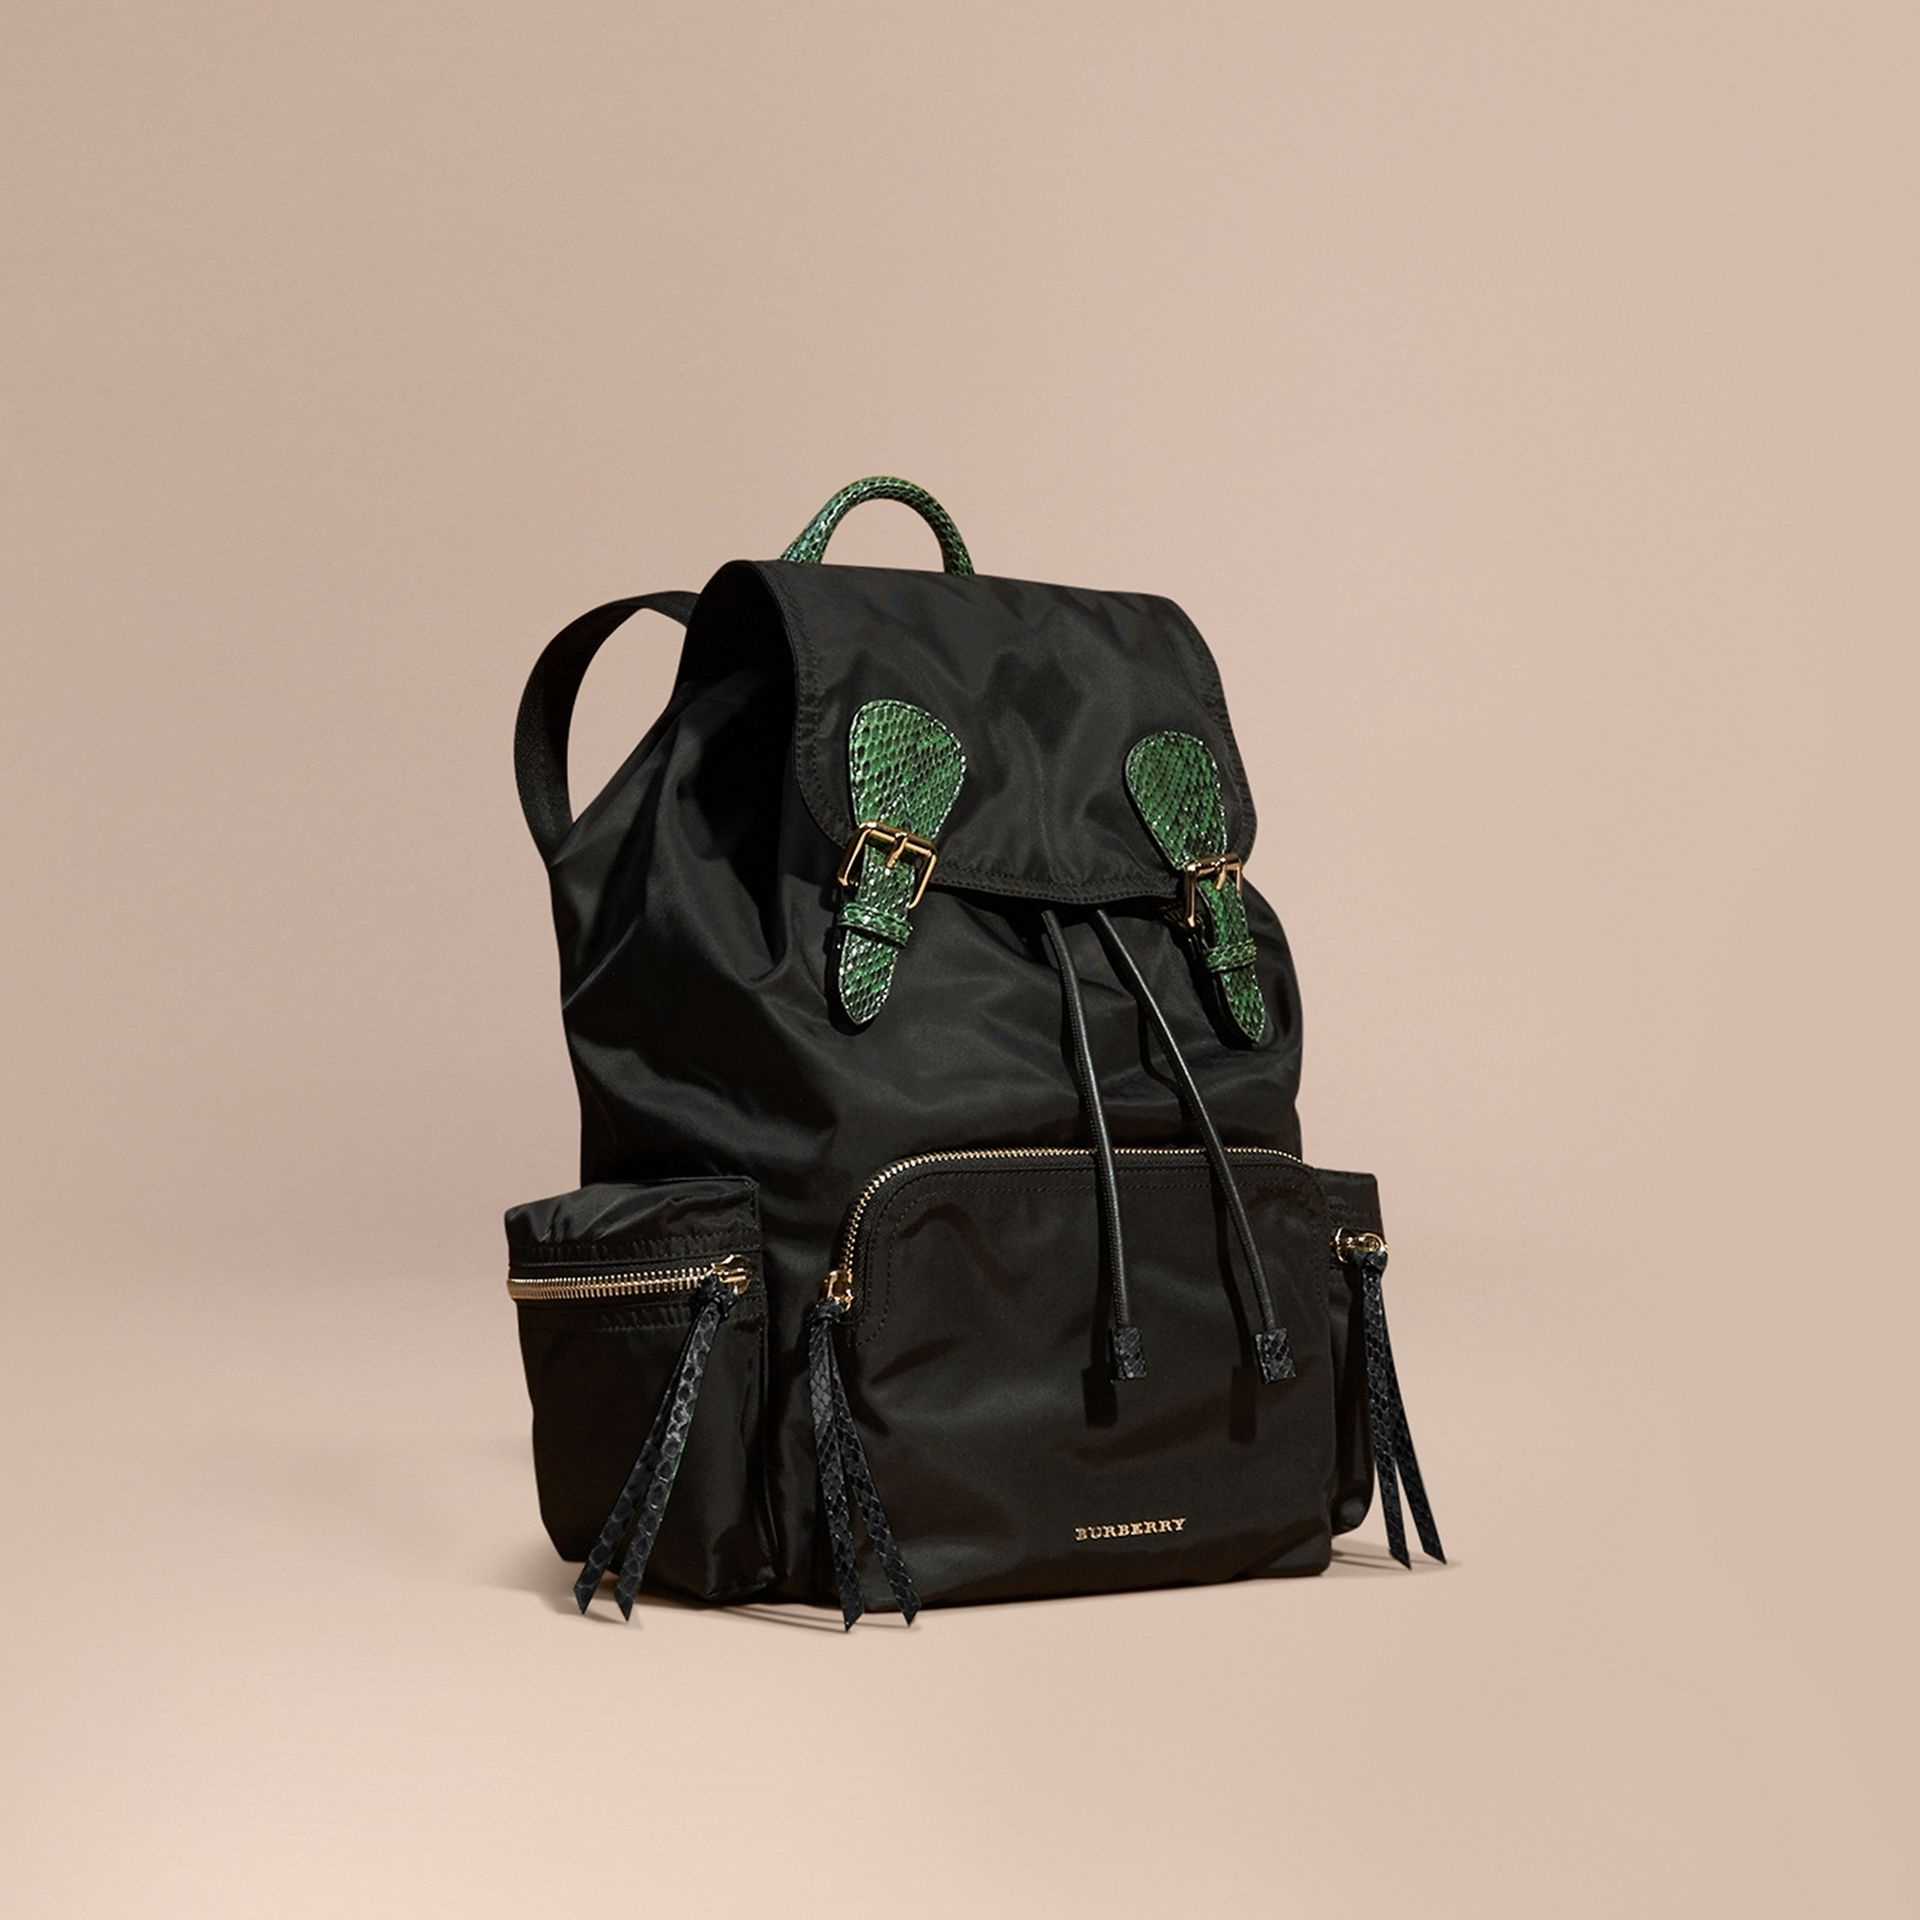 Zaino The Rucksack grande in nylon tecnico e pelle di serpente Nero/verde Brillante - immagine della galleria 1